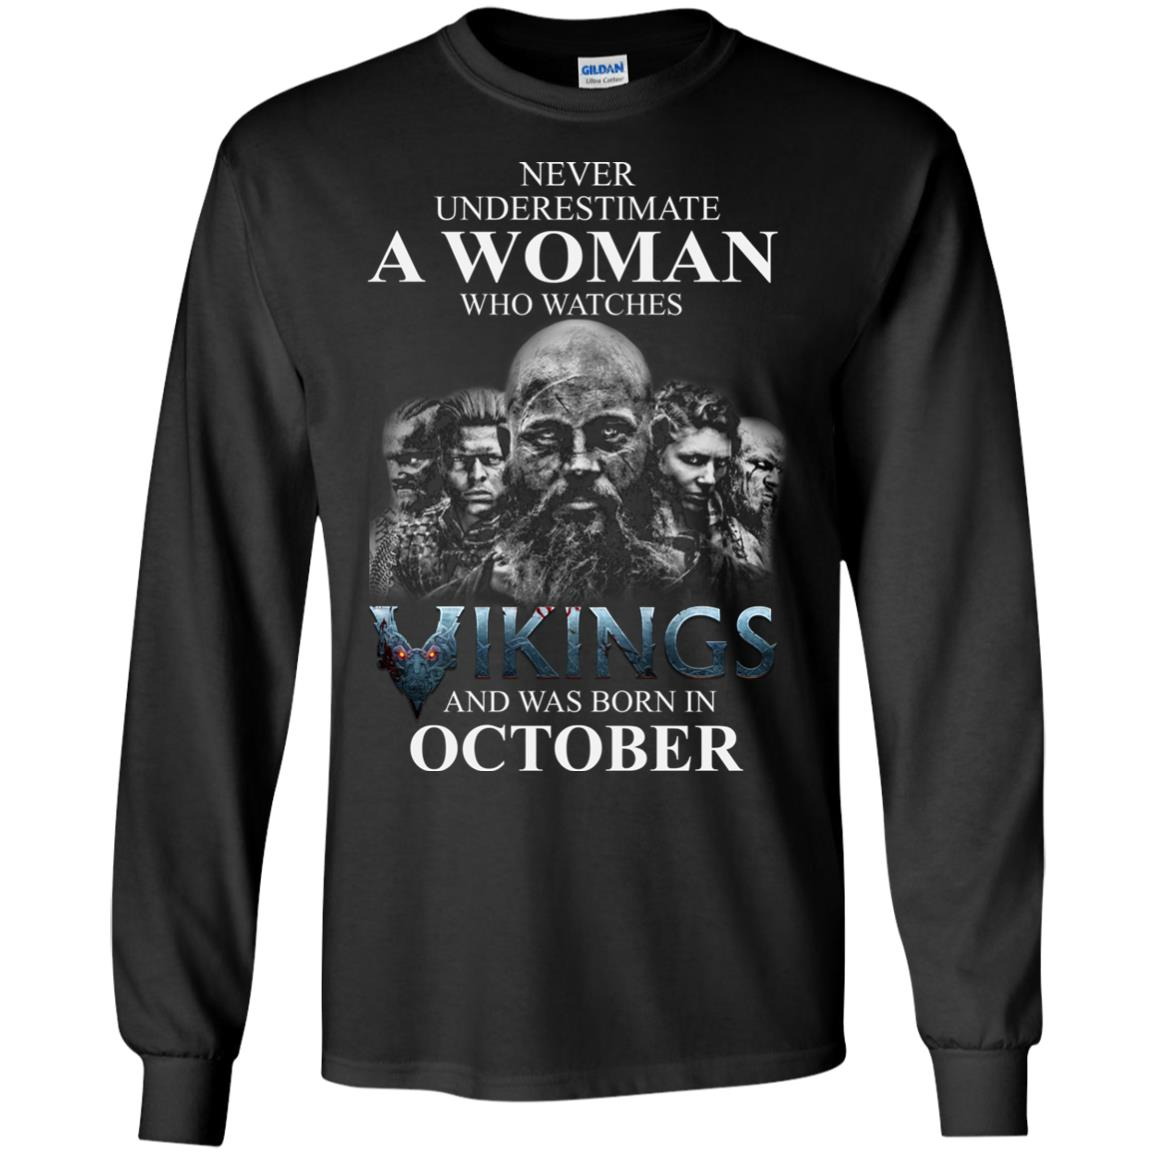 image 1245 - Never Underestimate A woman who watches Vikings and was born in October shirt